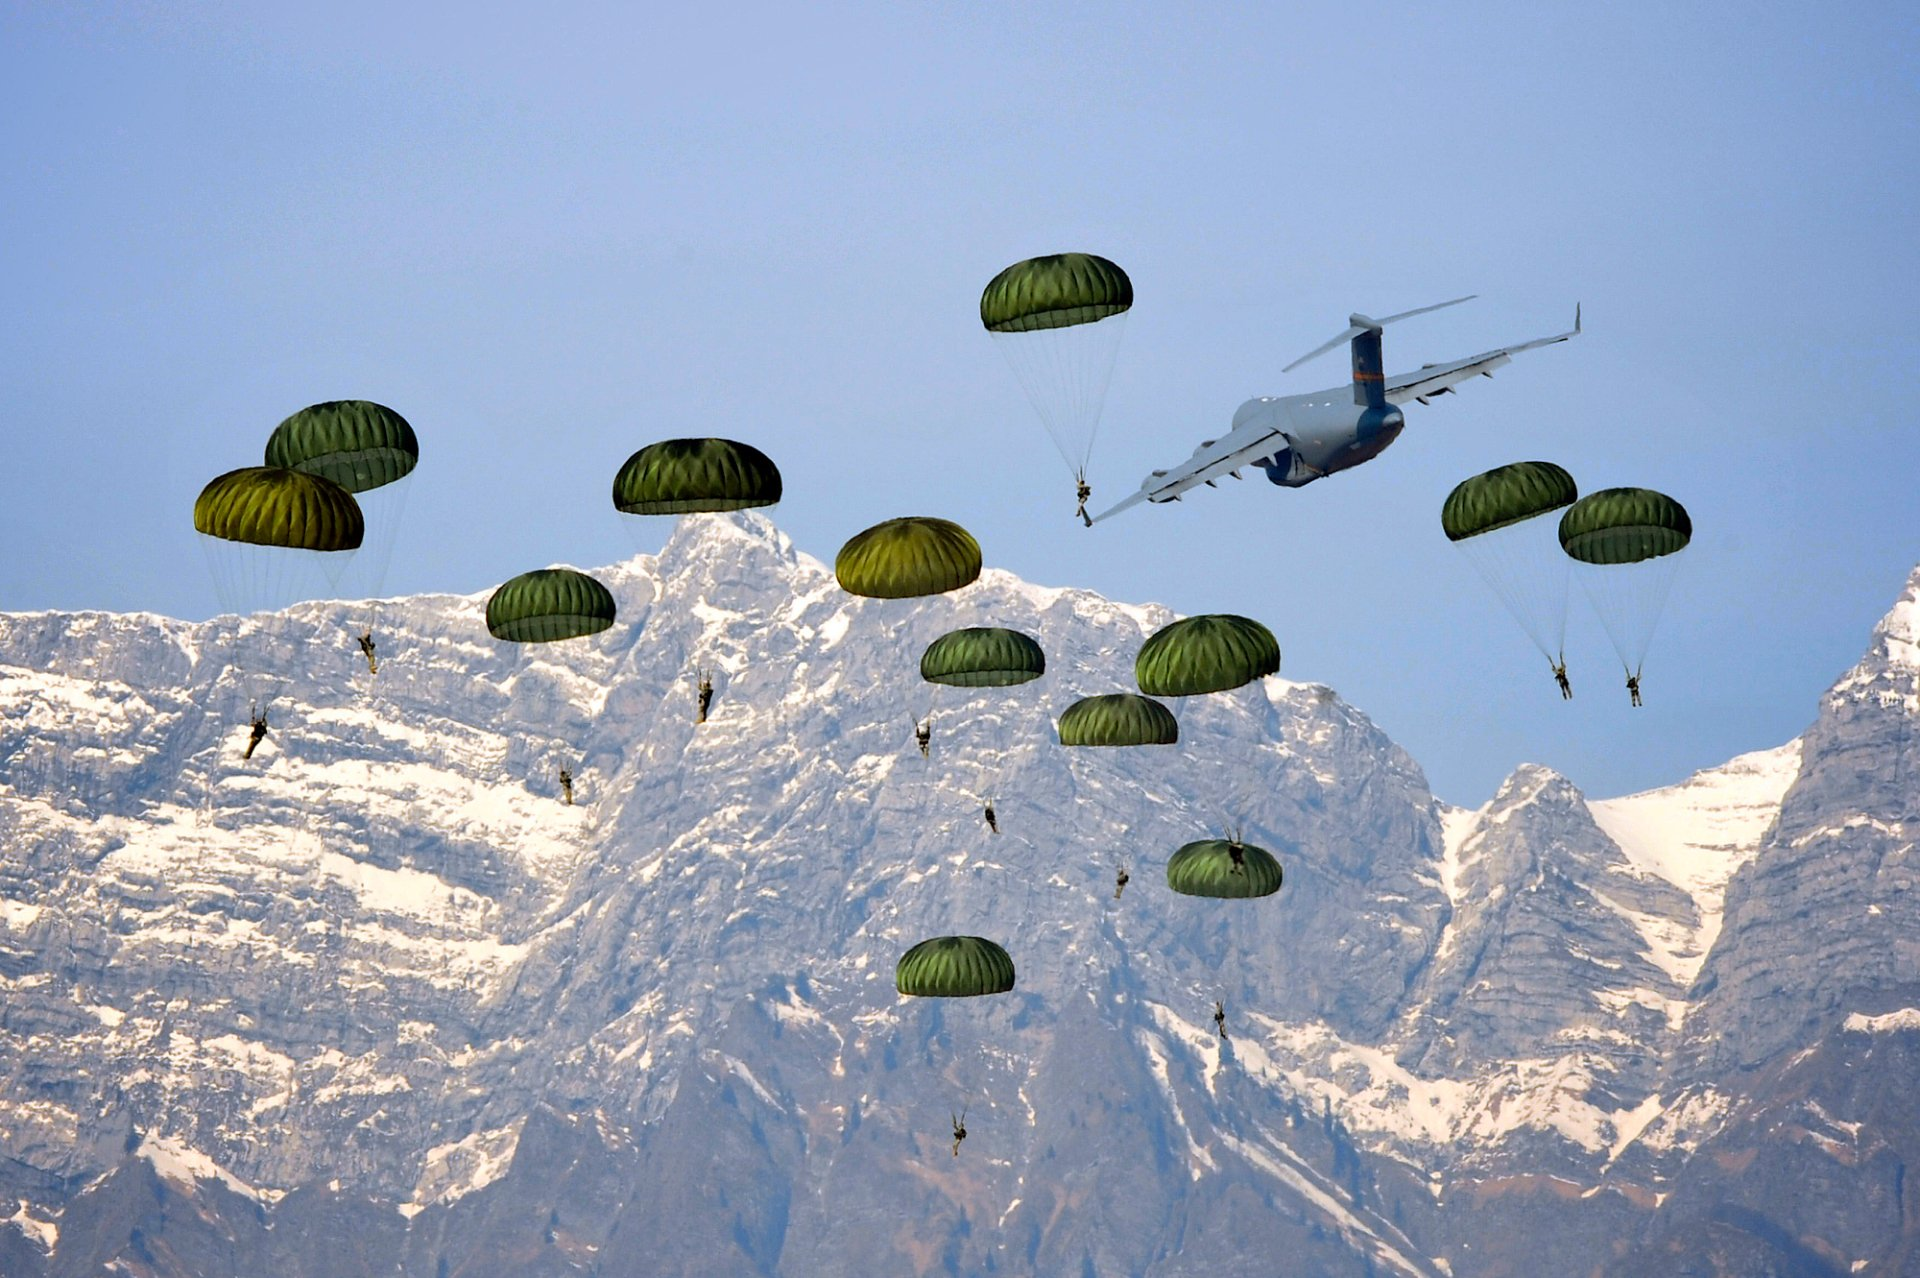 Paratrooper HD Wallpaper | Background Image | 2000x1331 ...